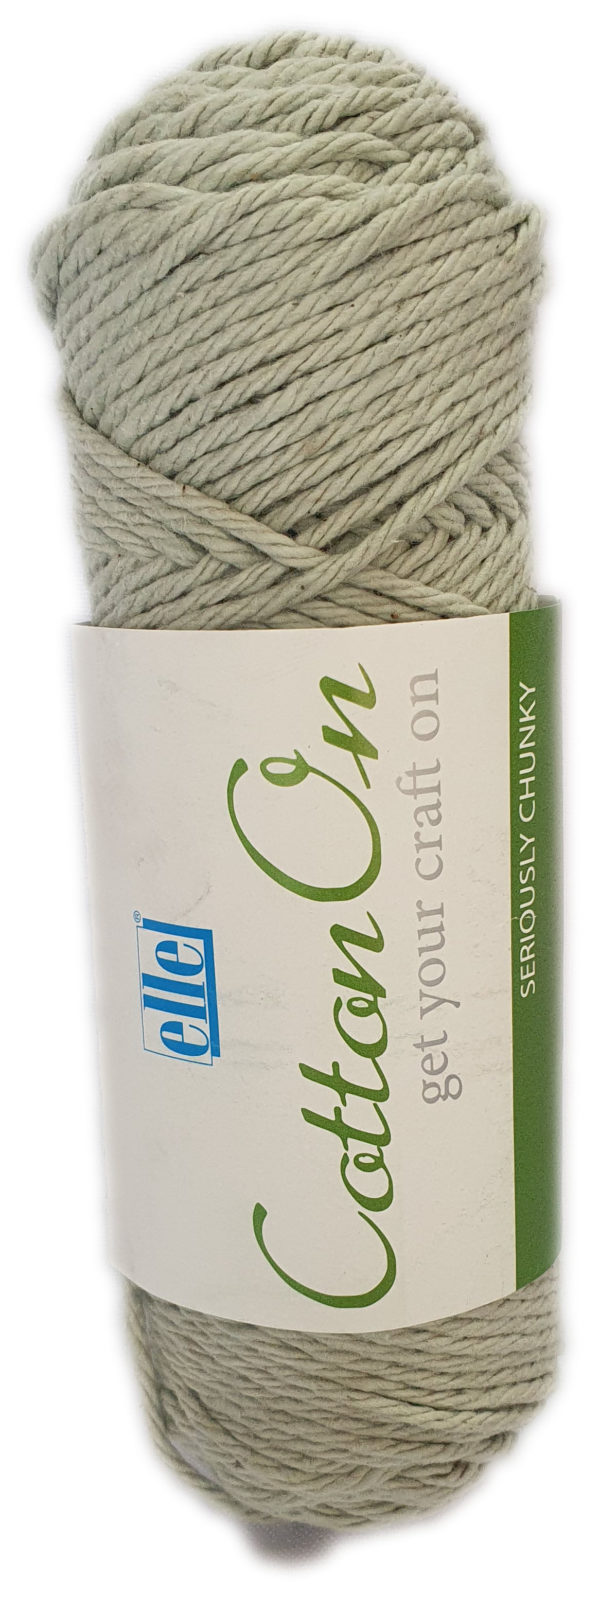 COTTON ON SERIOUSLY CHUNKY 100g-COL.774 ICED GREEN 1